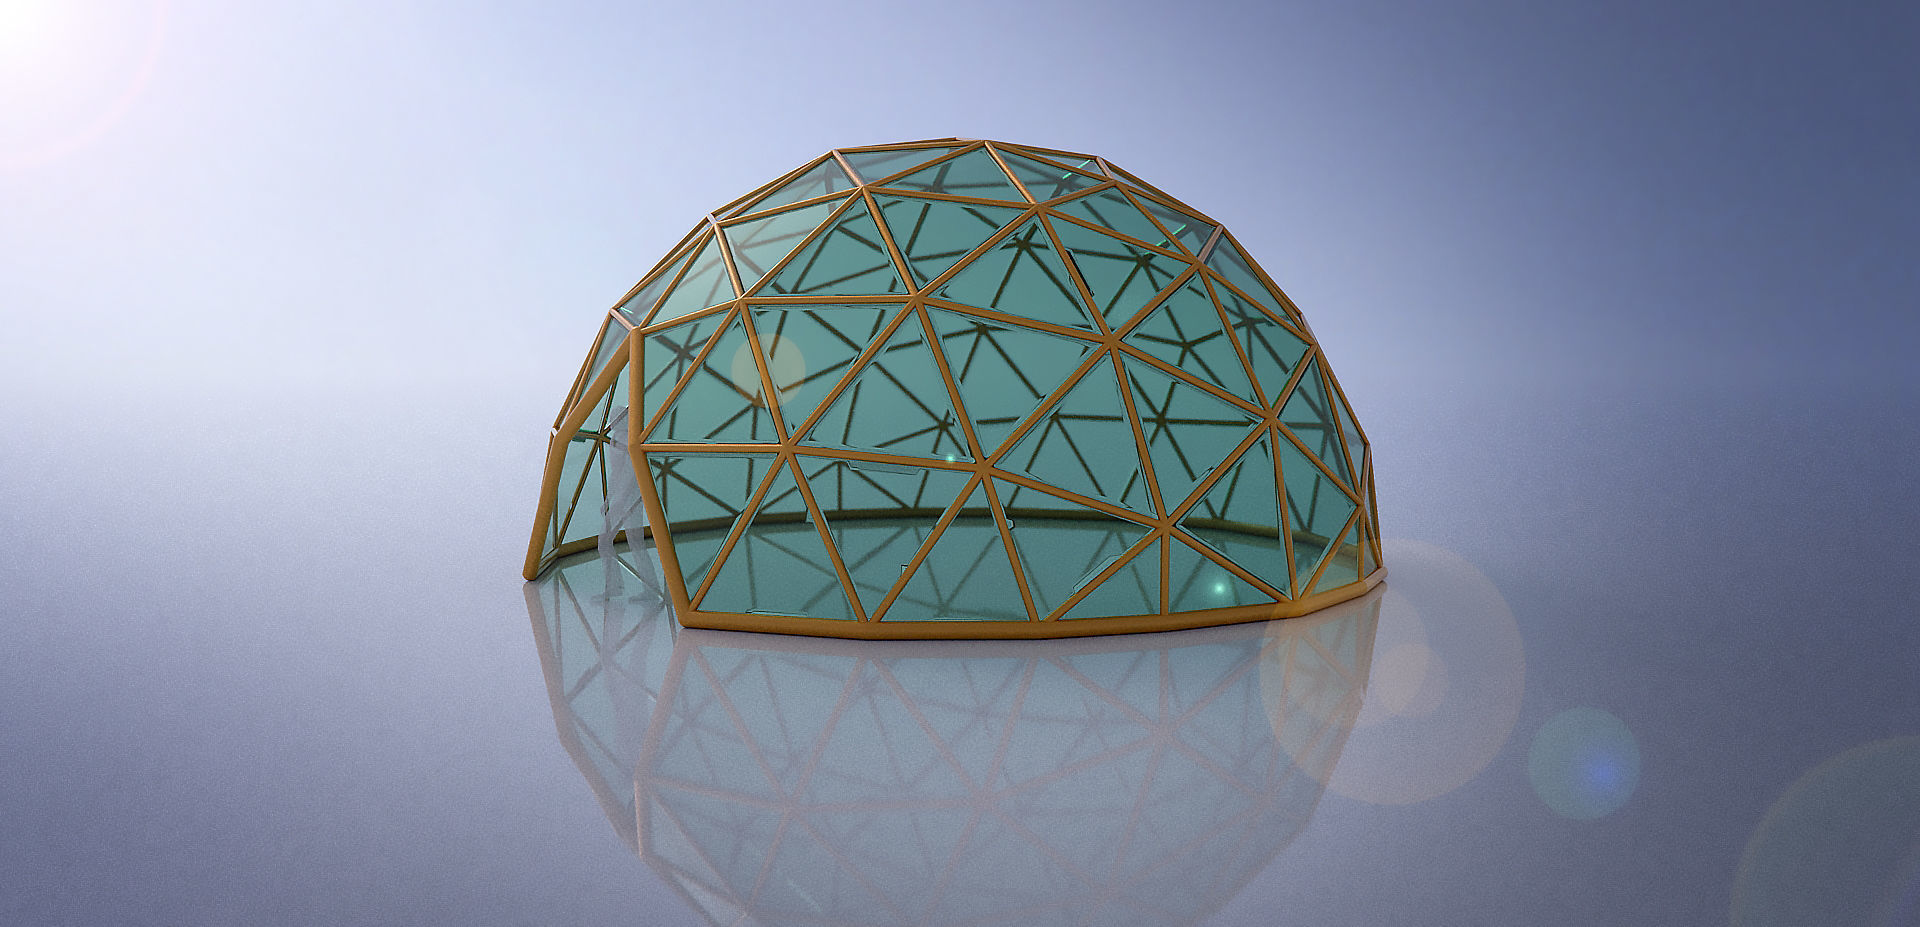 Large dome with glass panels and entry 3d DOME